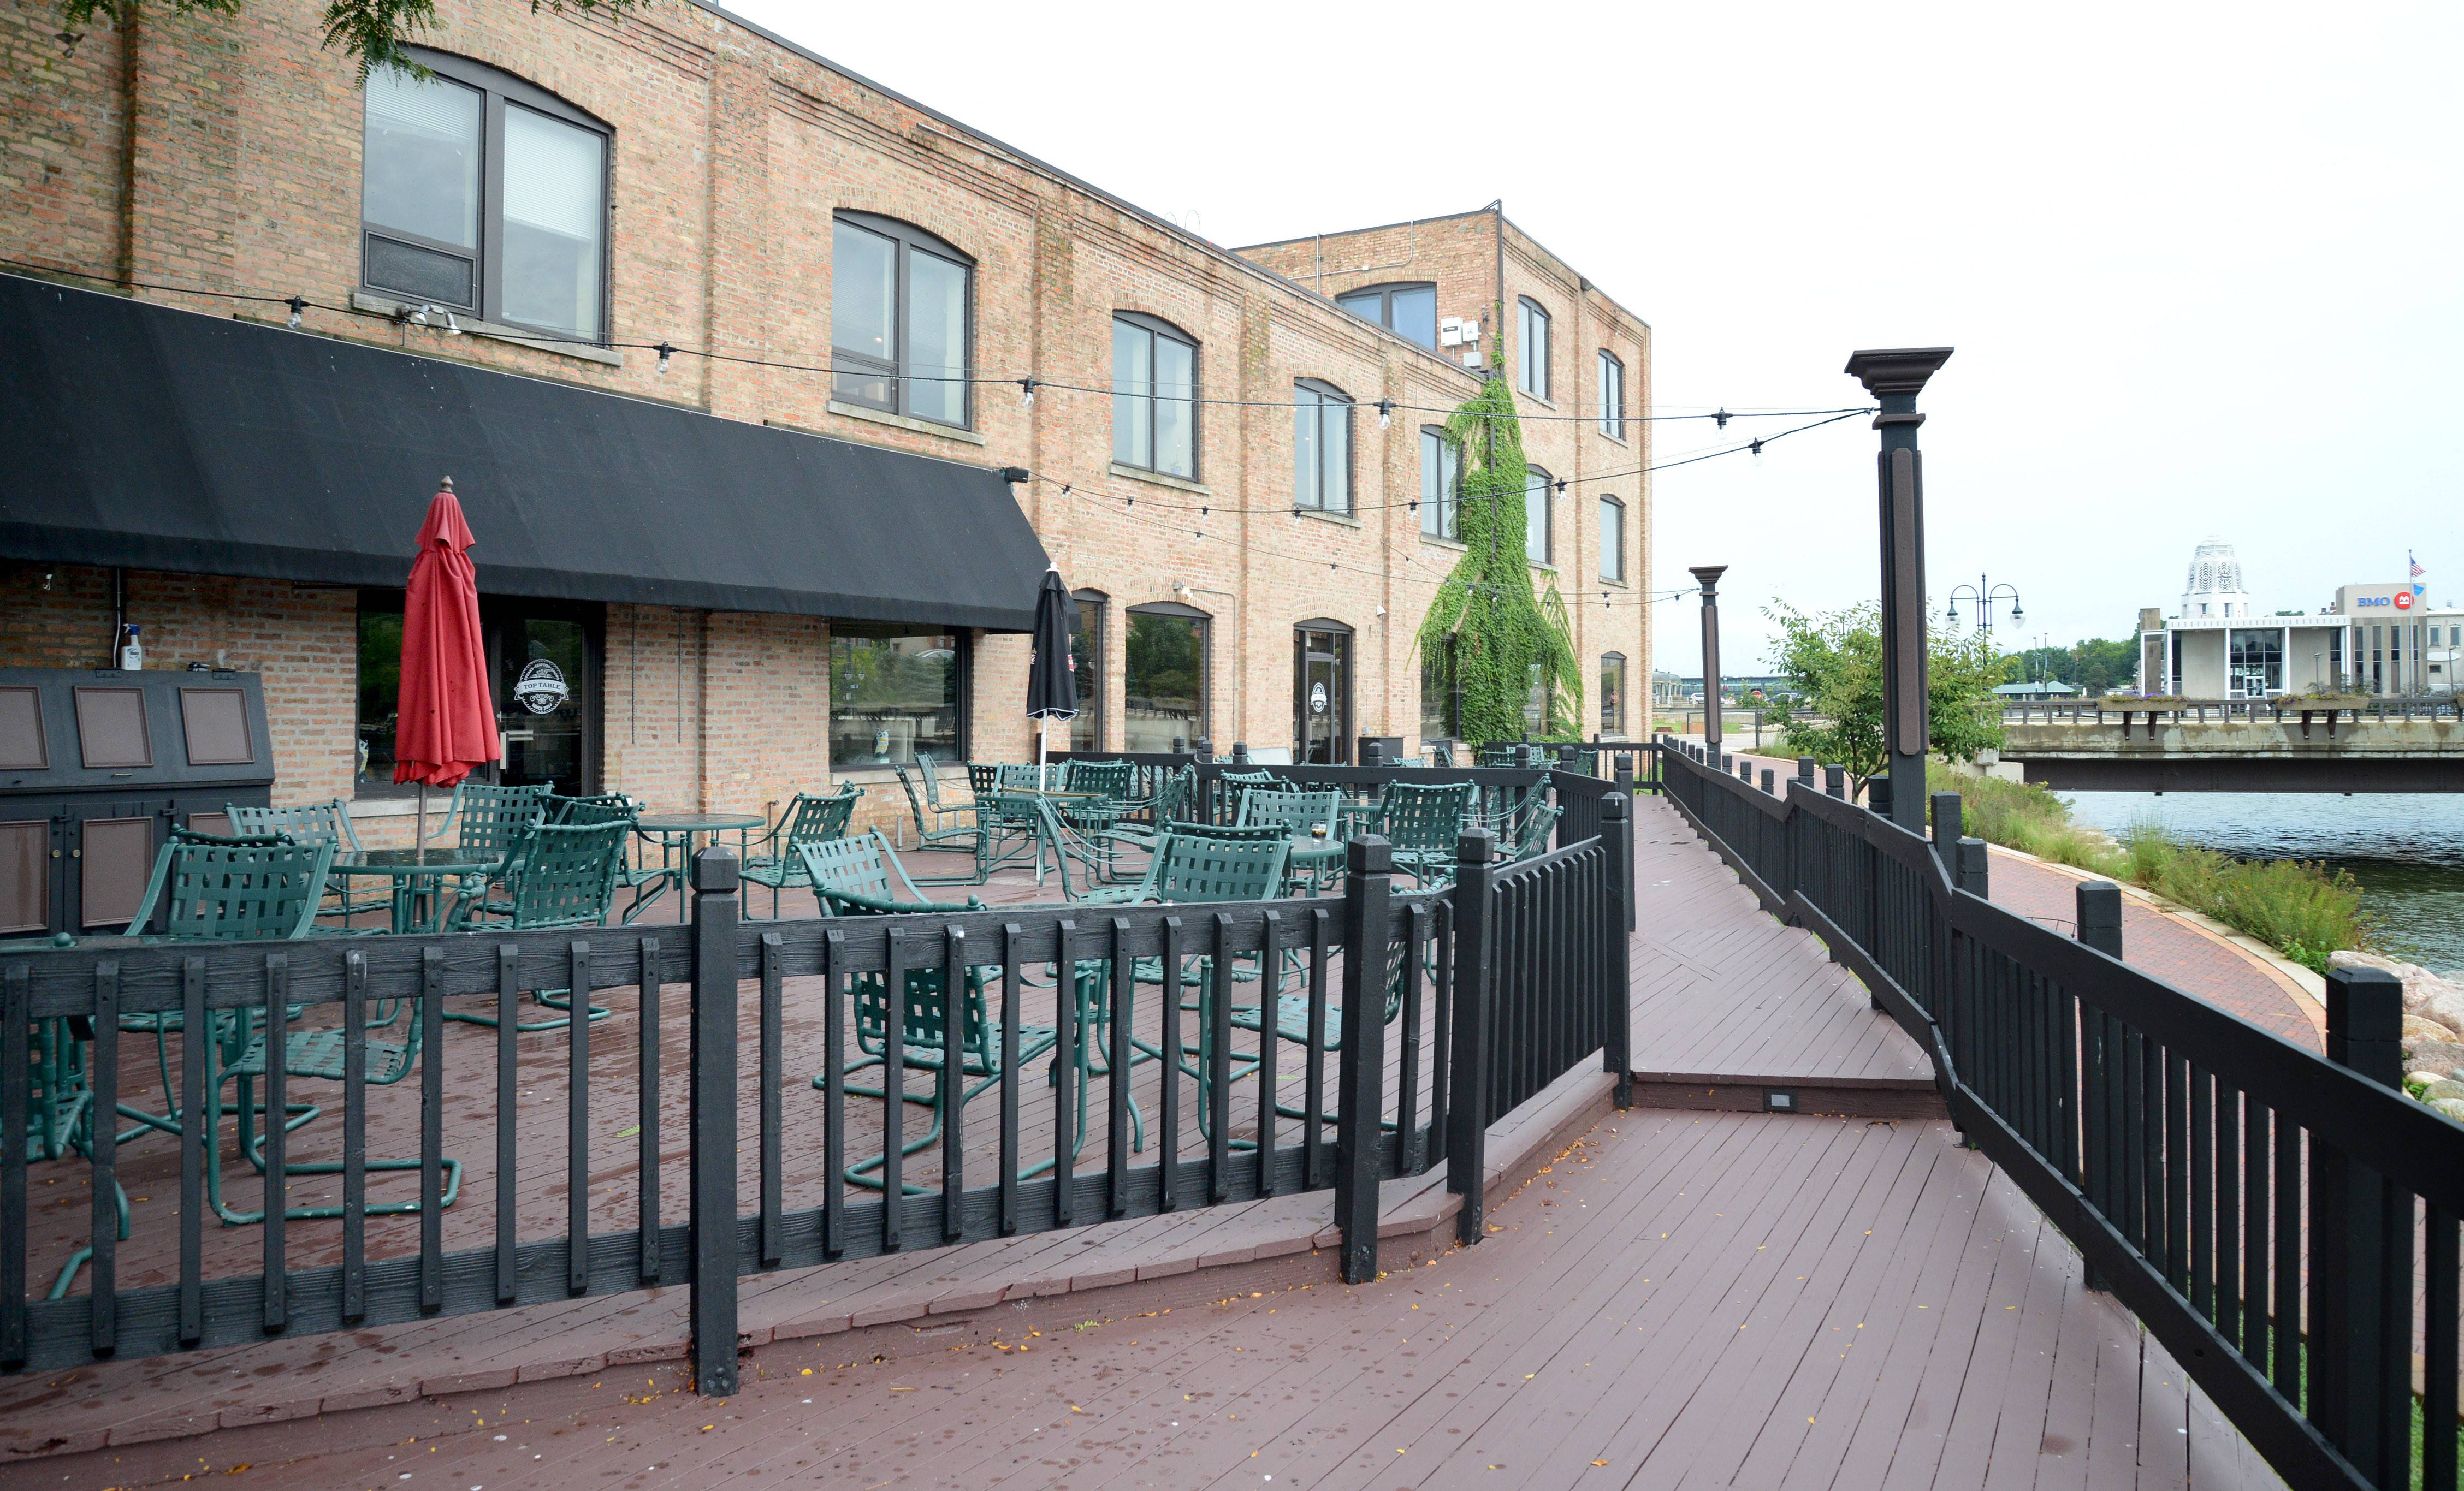 Top Table will be opening soon in the location formerly occupied by restaurants Erik & Me and Sage Bistro along the Fox River near downtown St. Charles.